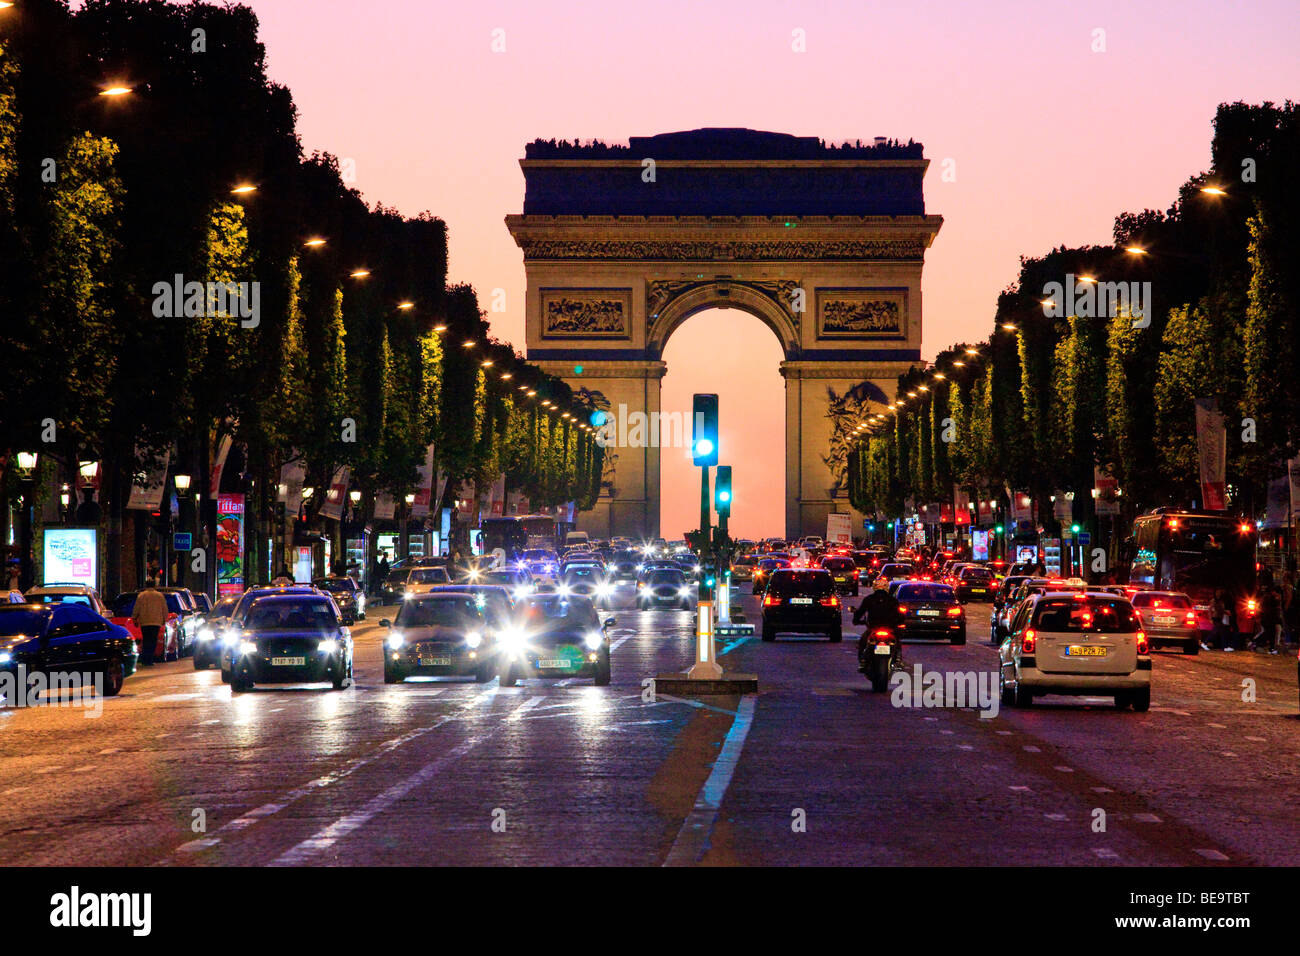 Arc de Triomphe and the Champs Elysees at night in Paris. - Stock Image